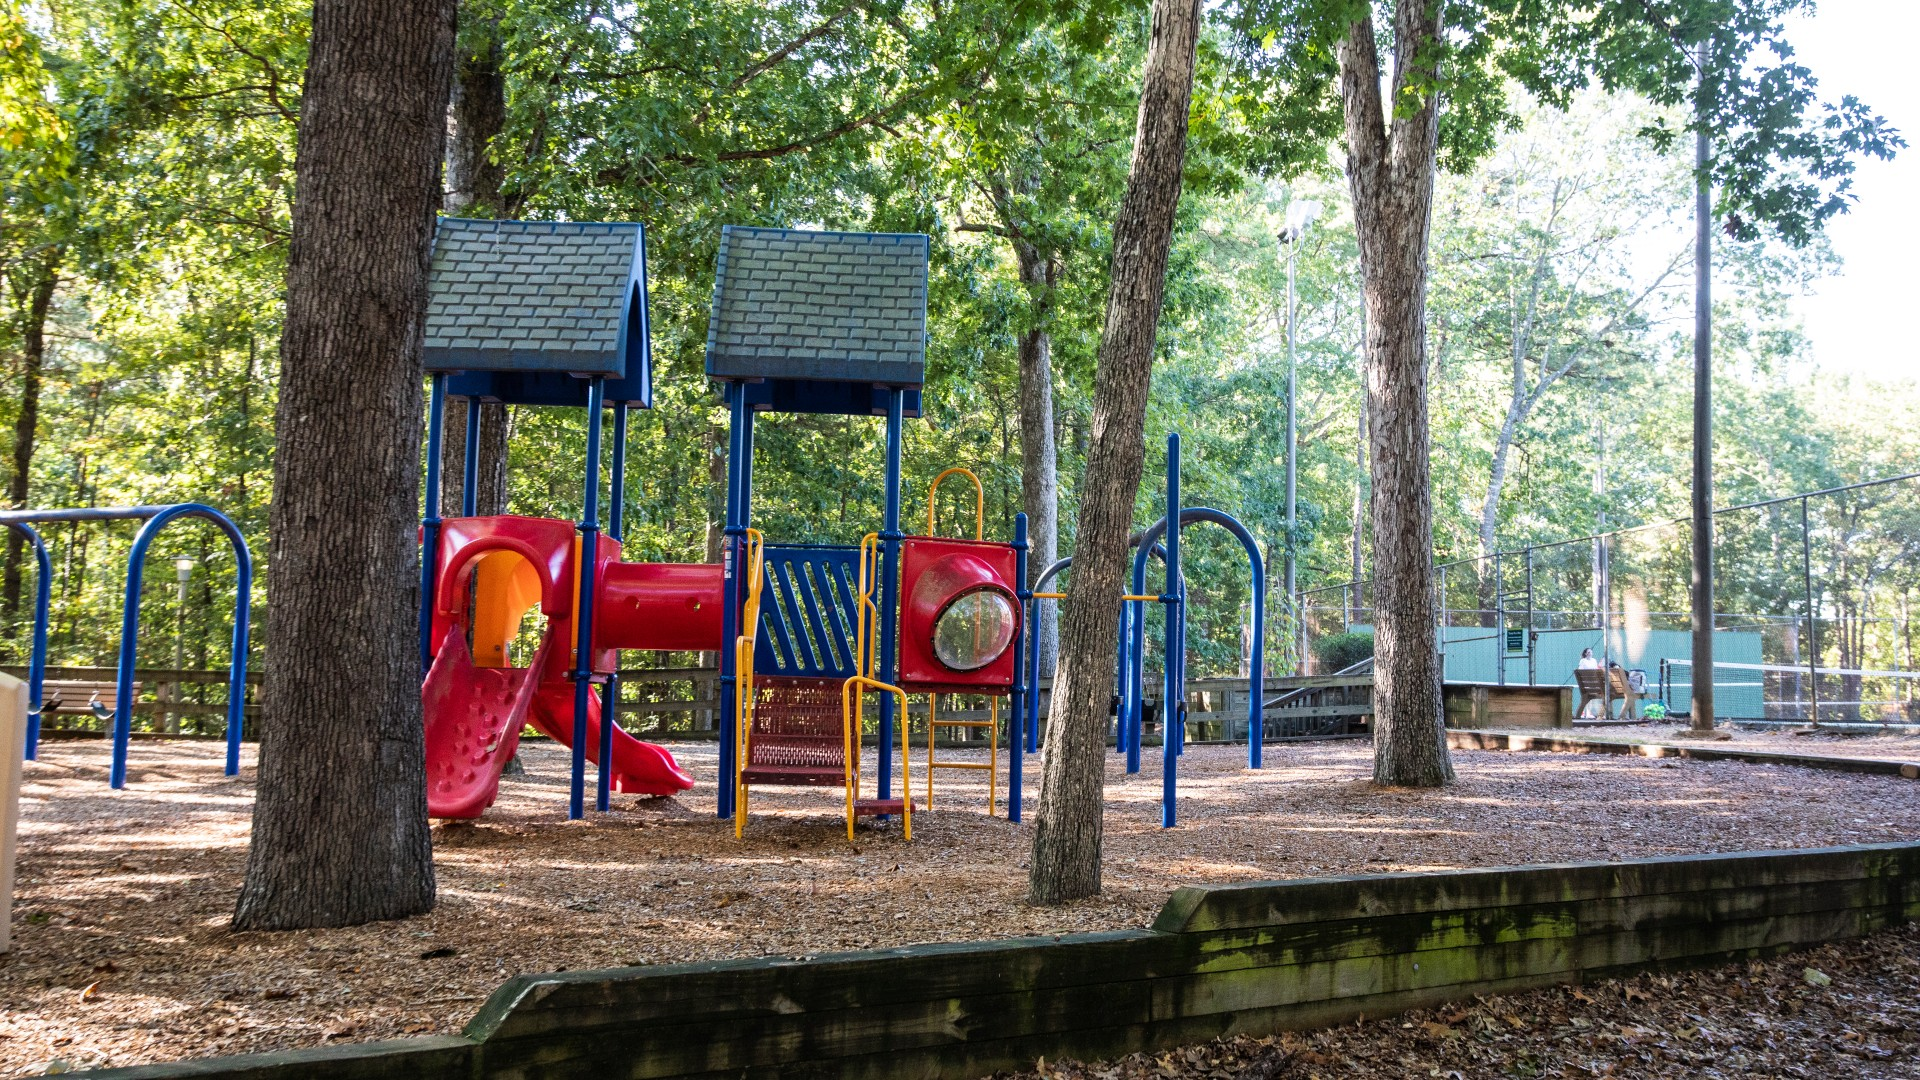 Playground for children ages 2 to 5 at Cedar Hills Park